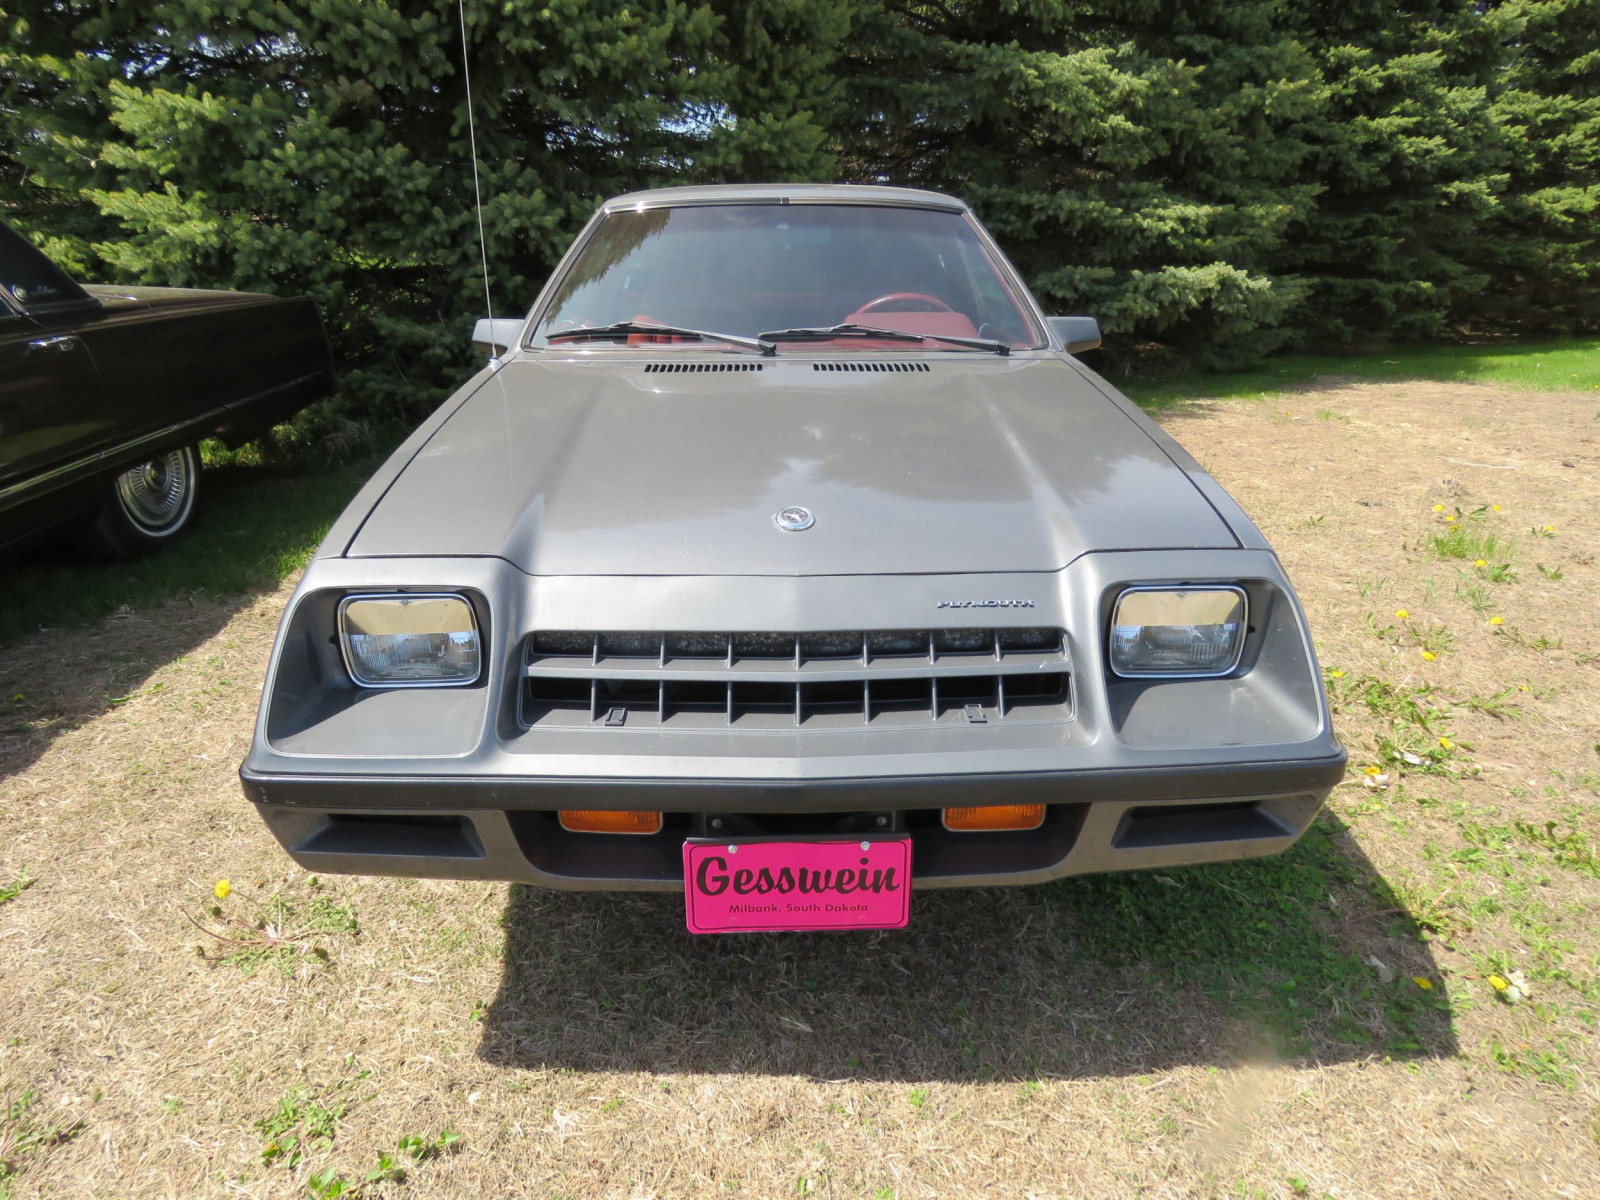 1983 Plymouth Scamp Pickup - Image 2